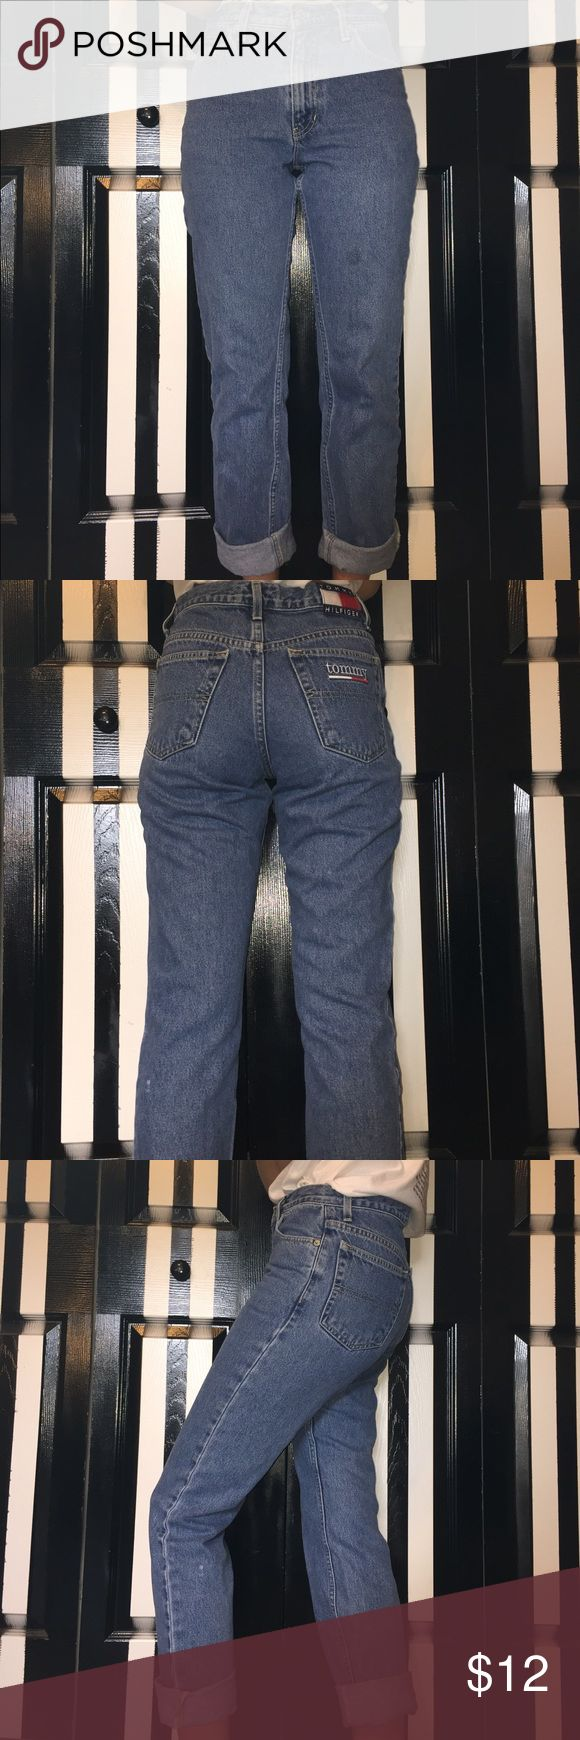 Vintage TOMMY HILFIGER jeans, high-waisted Vintage TOMMY HILFIGER jeans, high-waisted mom jeans, pre-owned, so a little worn out but still cute. Size 5/32 Tommy Hilfiger Jeans Boyfriend